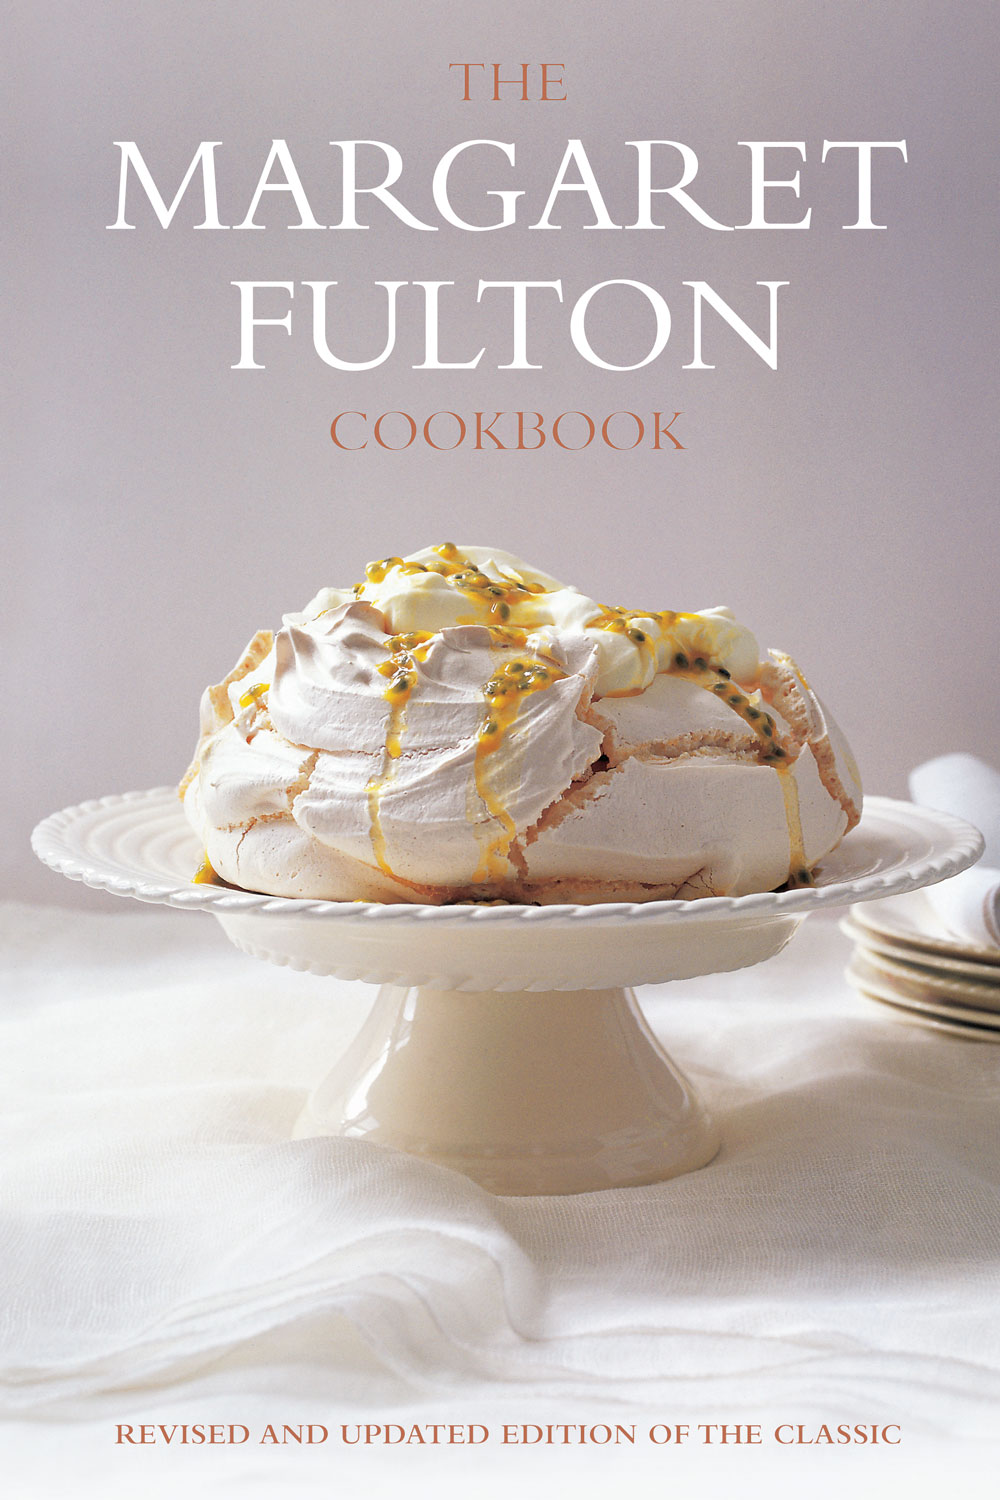 The Margaret Fulton Cookbook